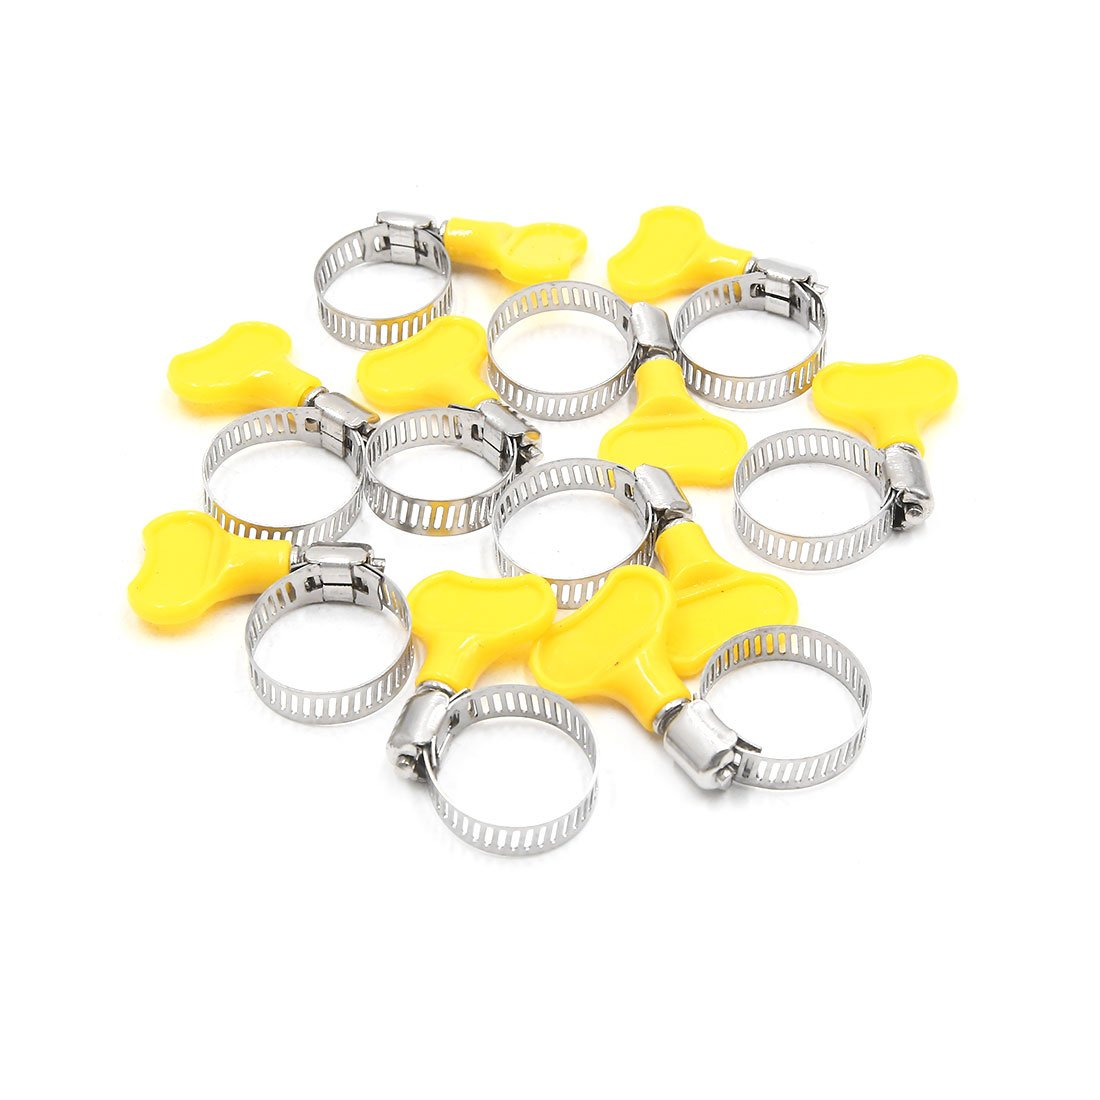 sourcingmap 16Pcs Stainless Steel Adjustable Car Fuel Hose Clamp Clip 6-12mm